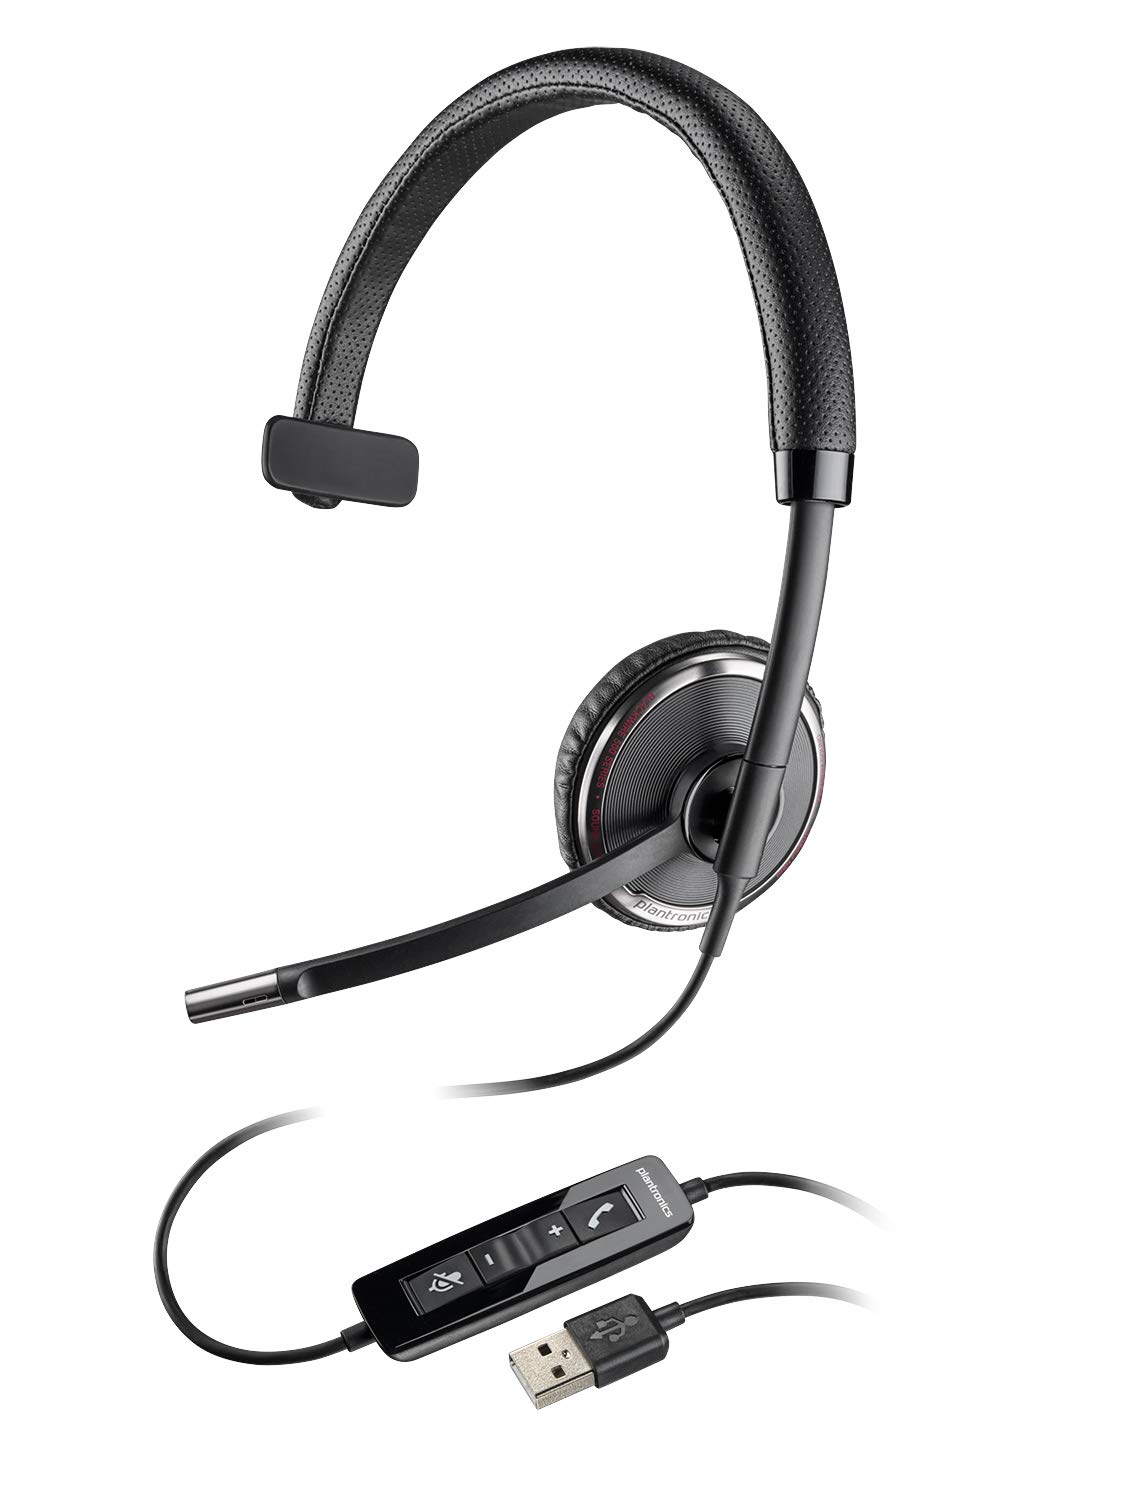 Plantronics Blackwire 510 USB Headset, On-Ear Mono Headset, Wired 88860-02